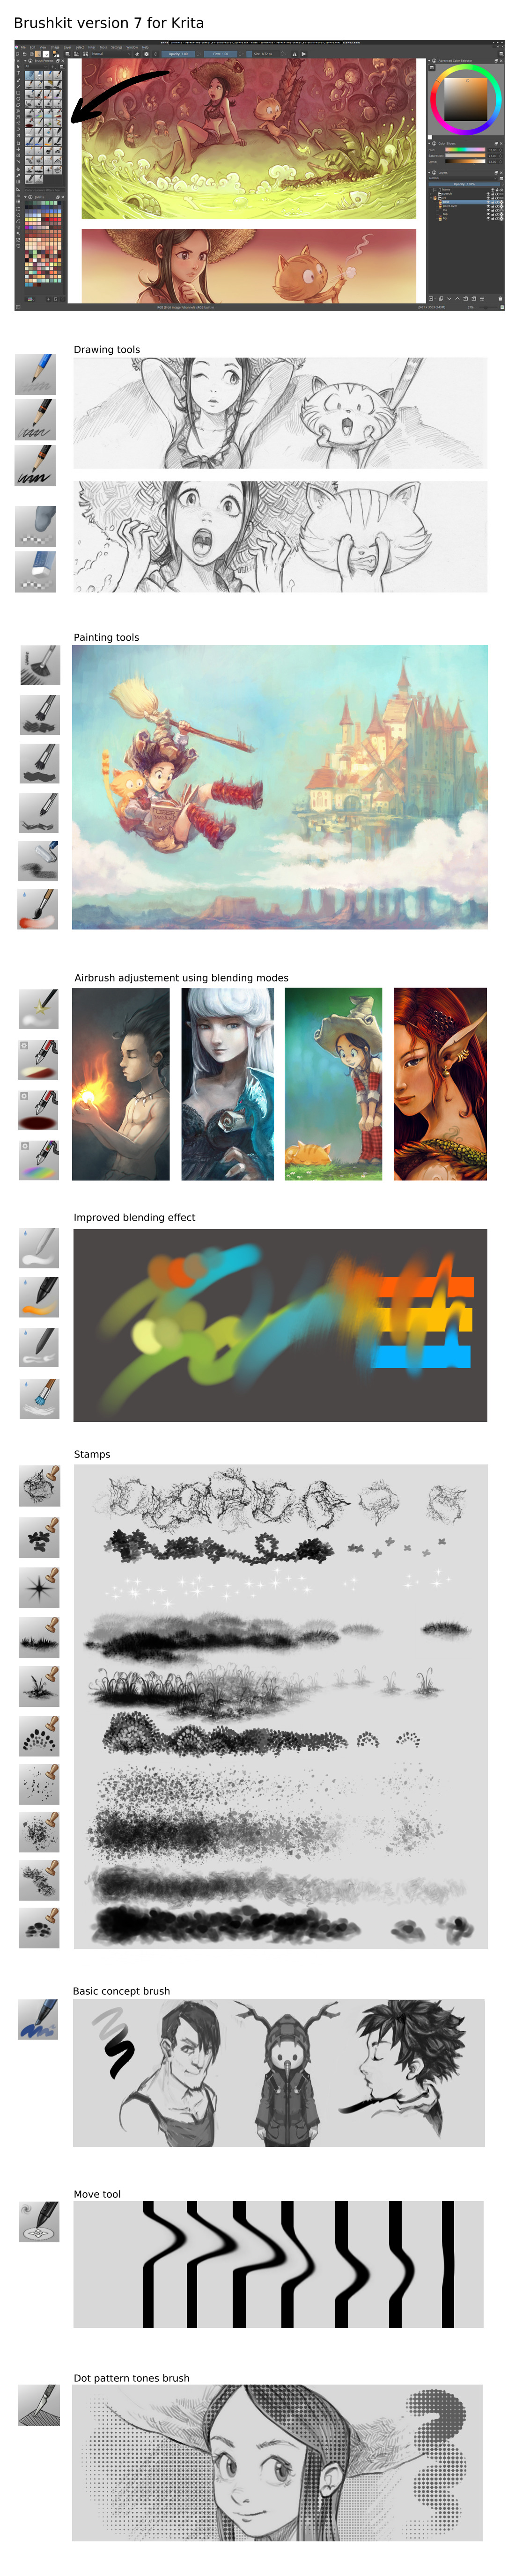 Github Deevad Deevad Krita Brushpresets Brush Presets To Use With The Open Source Digital